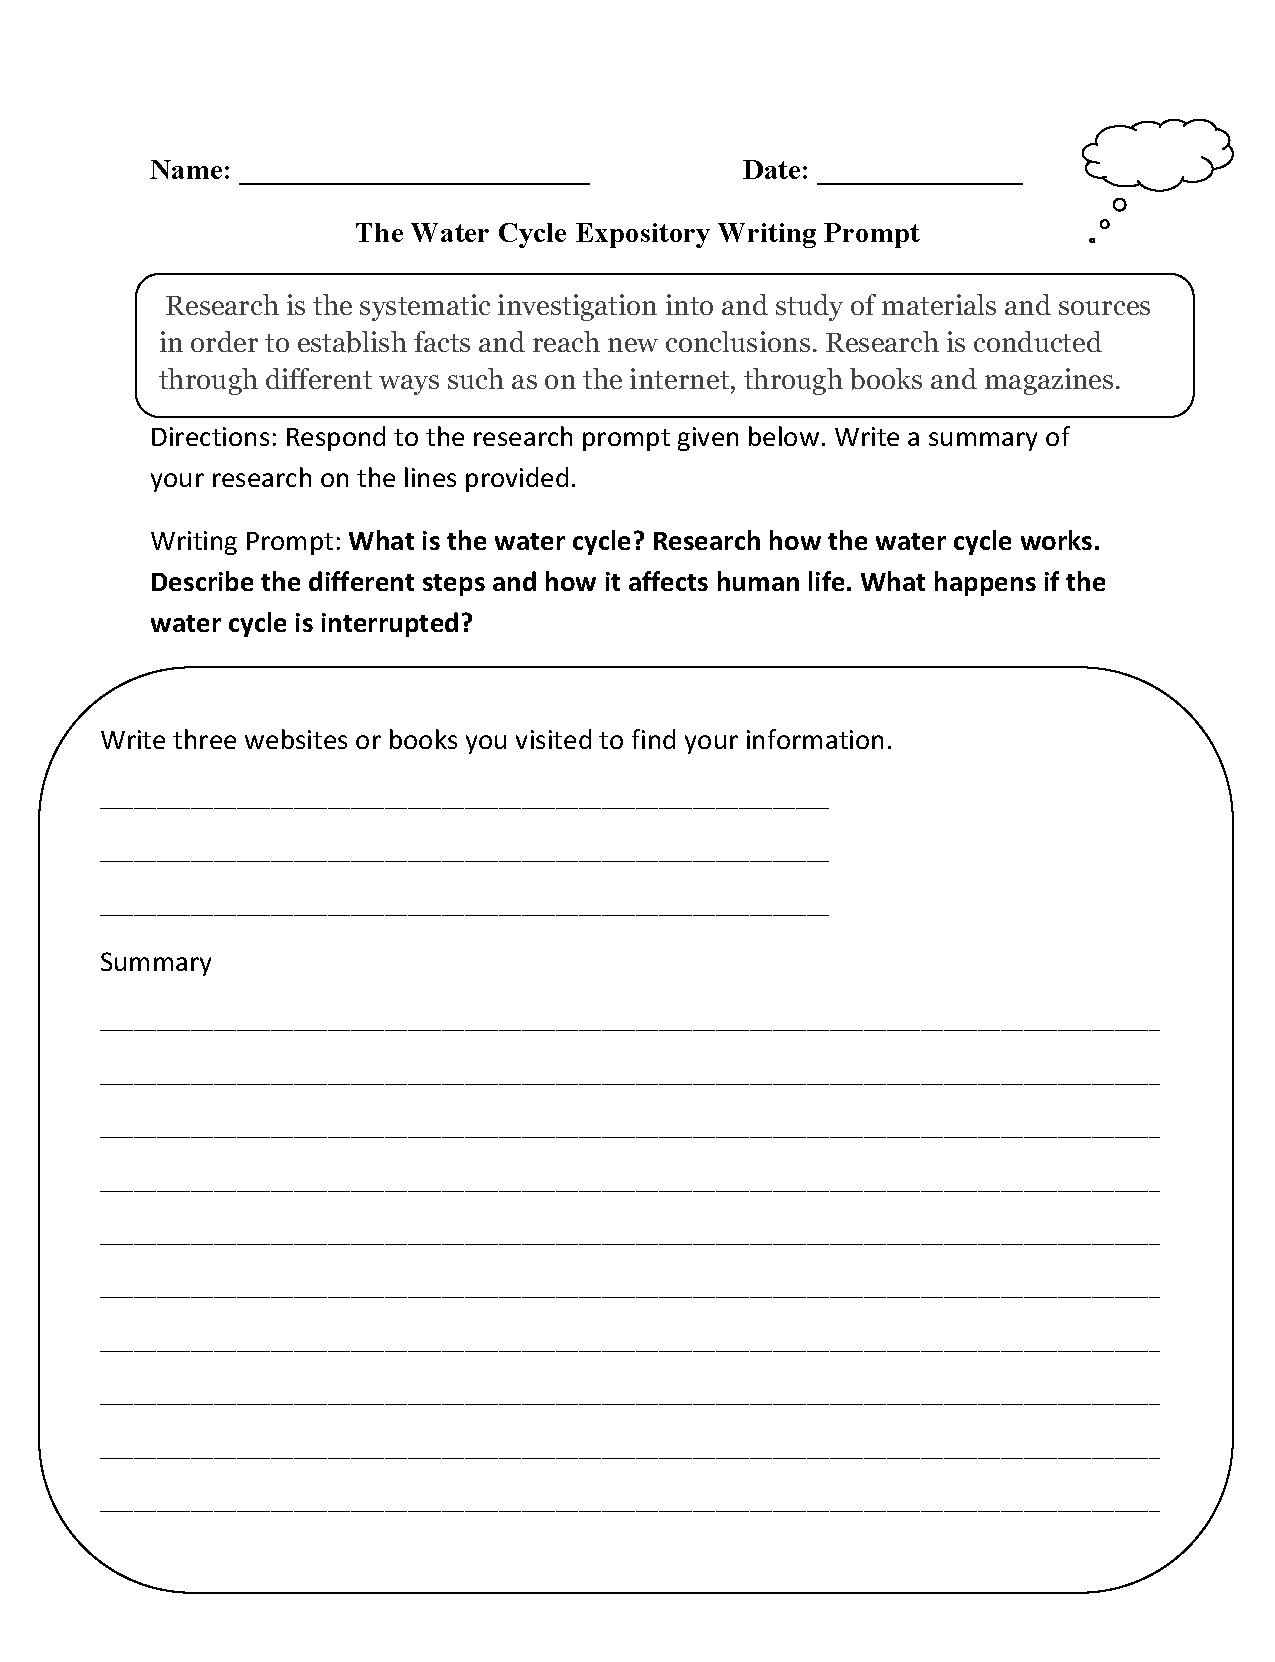 Water Cycle Expository Writing Prompt Worksheet